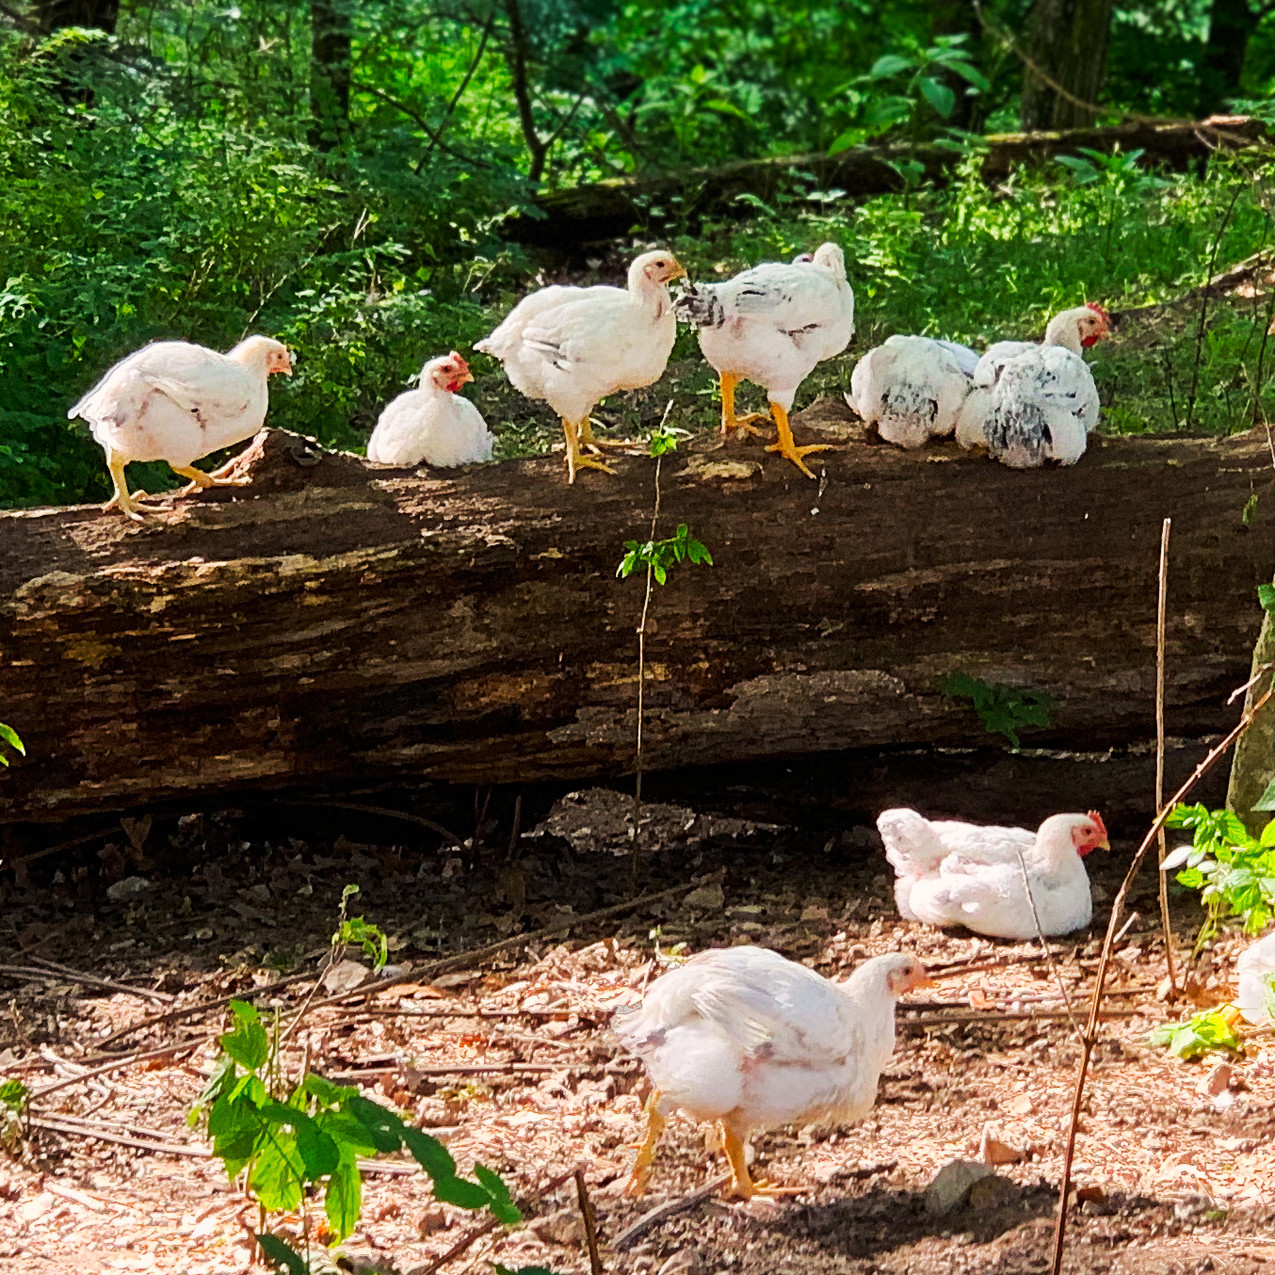 Cooks Venture chickens on log